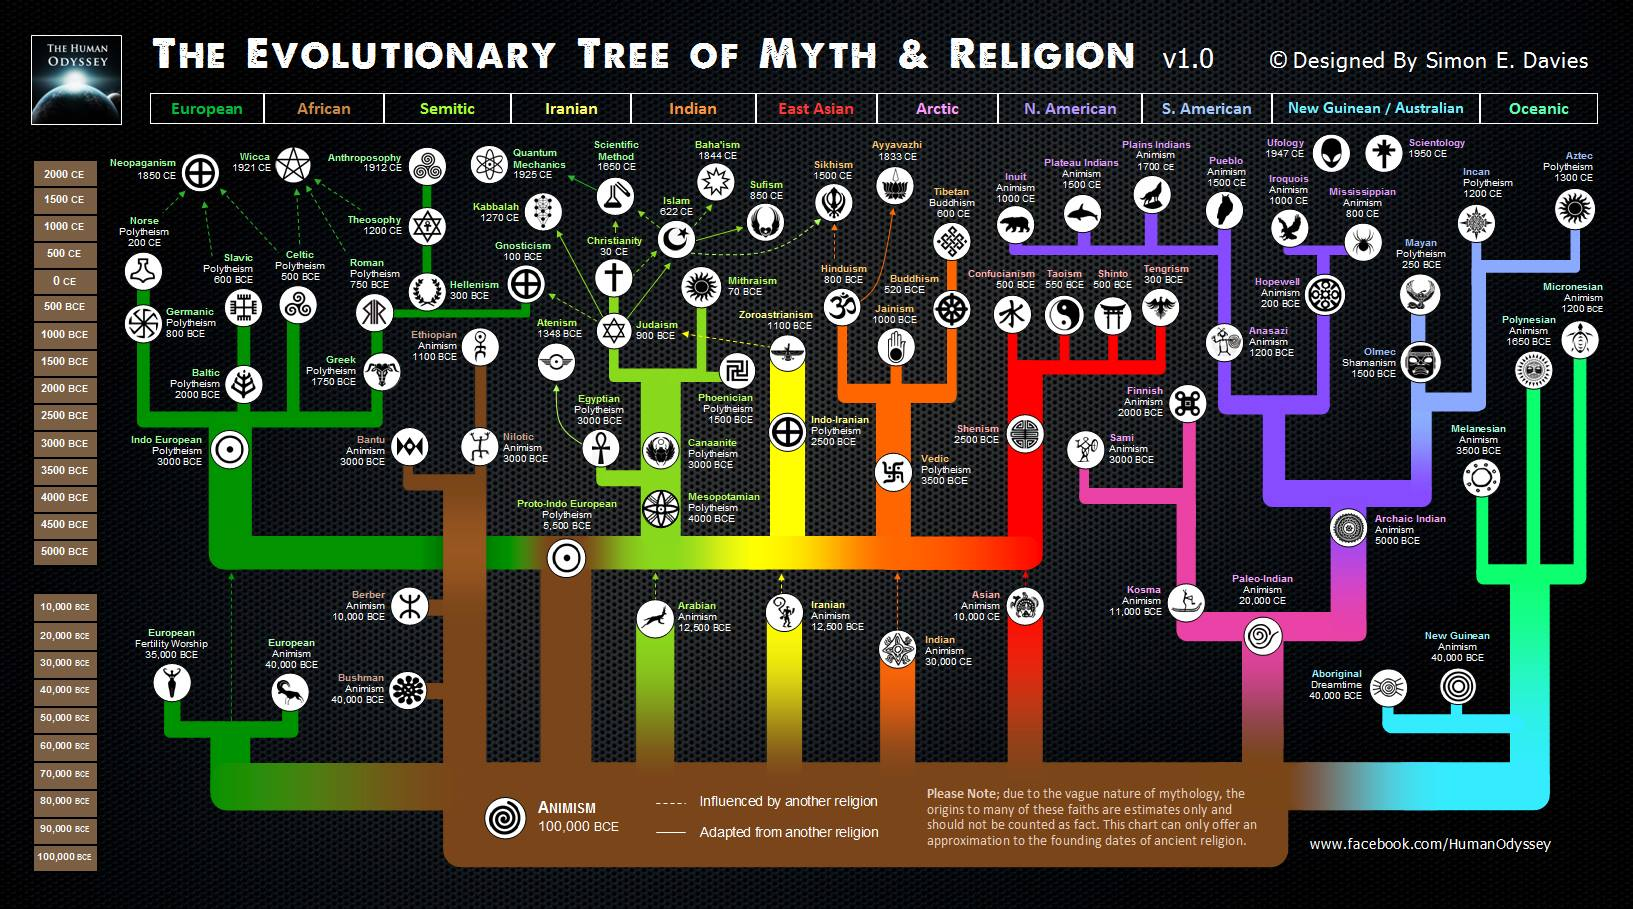 religion tree diagram 1997 nissan maxima wiring the evolutionary of myth and believers vs